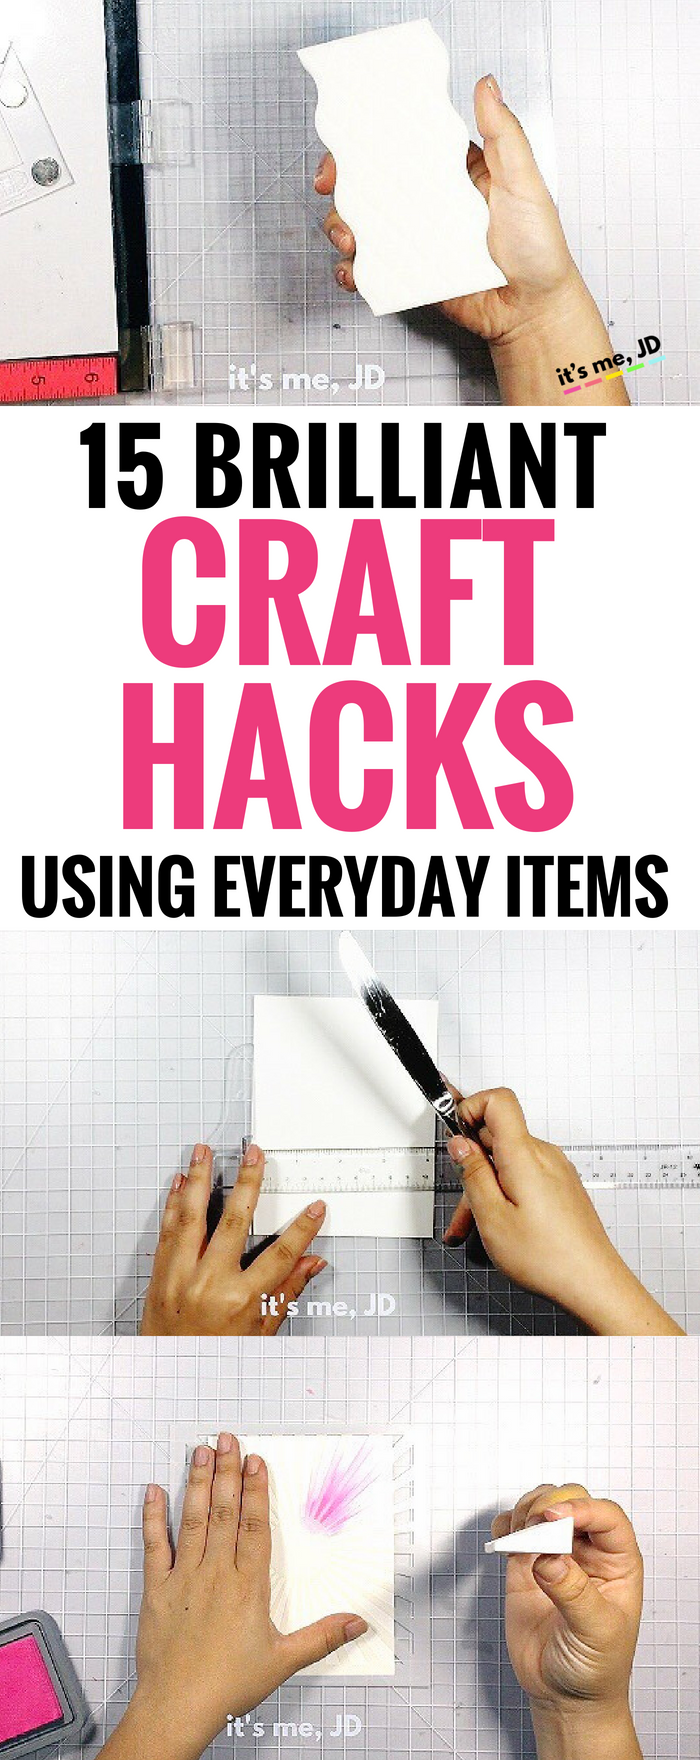 15 Brilliant Craft Hacks Using Everyday Items #crafthacks #crafttips #diycrafts #craftvideo #craftideas